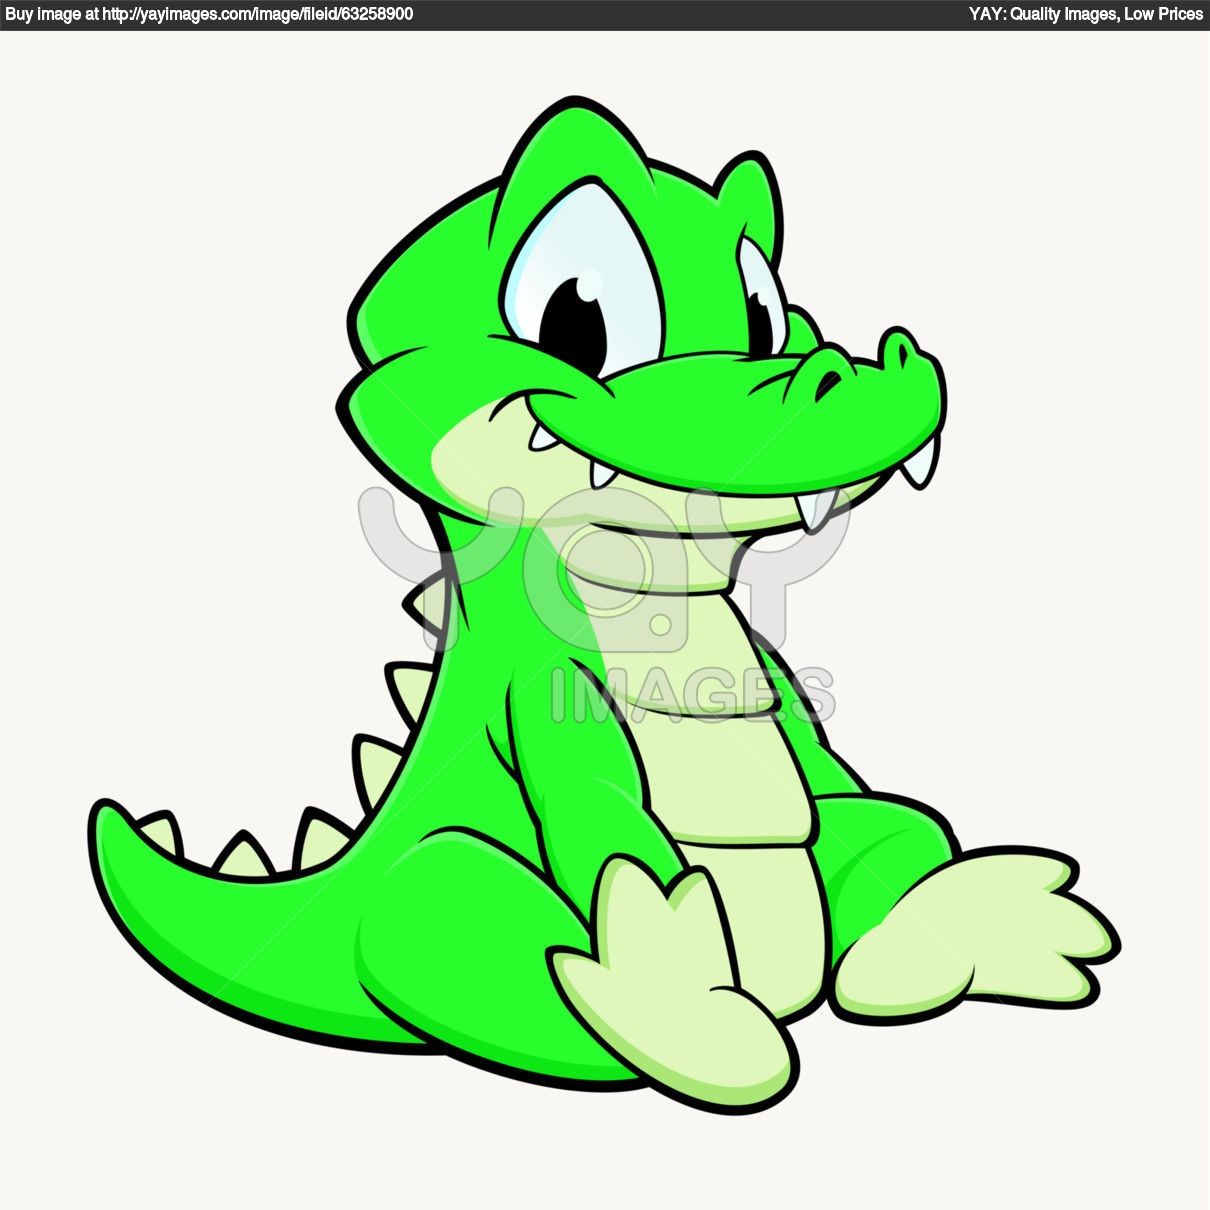 1210x1210 Crocodile Cartoon Drawing Alligator Cartoon Crocodile Cartoons